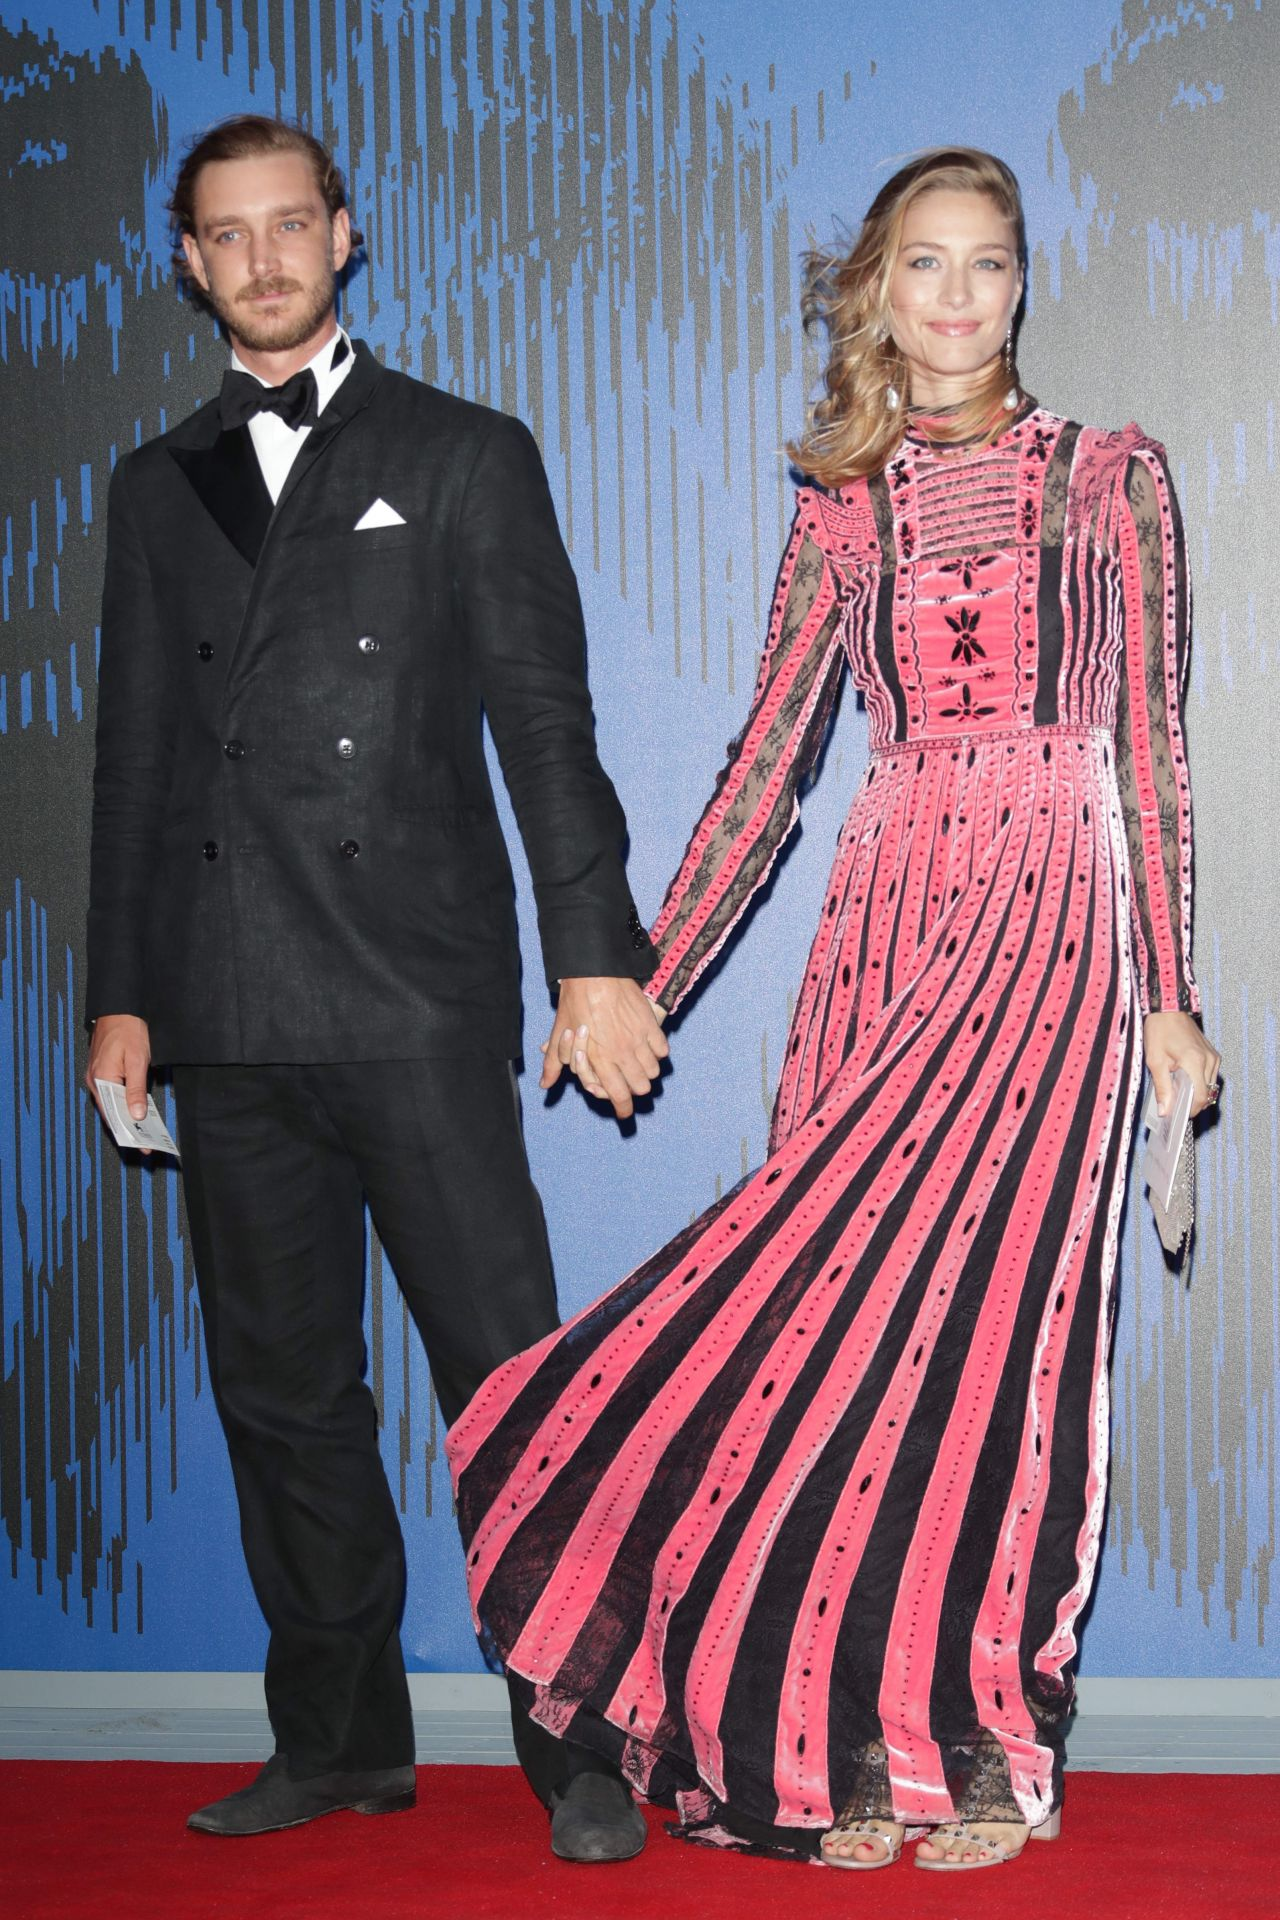 Beatrice Borromeo Latest Photos Celebmafia